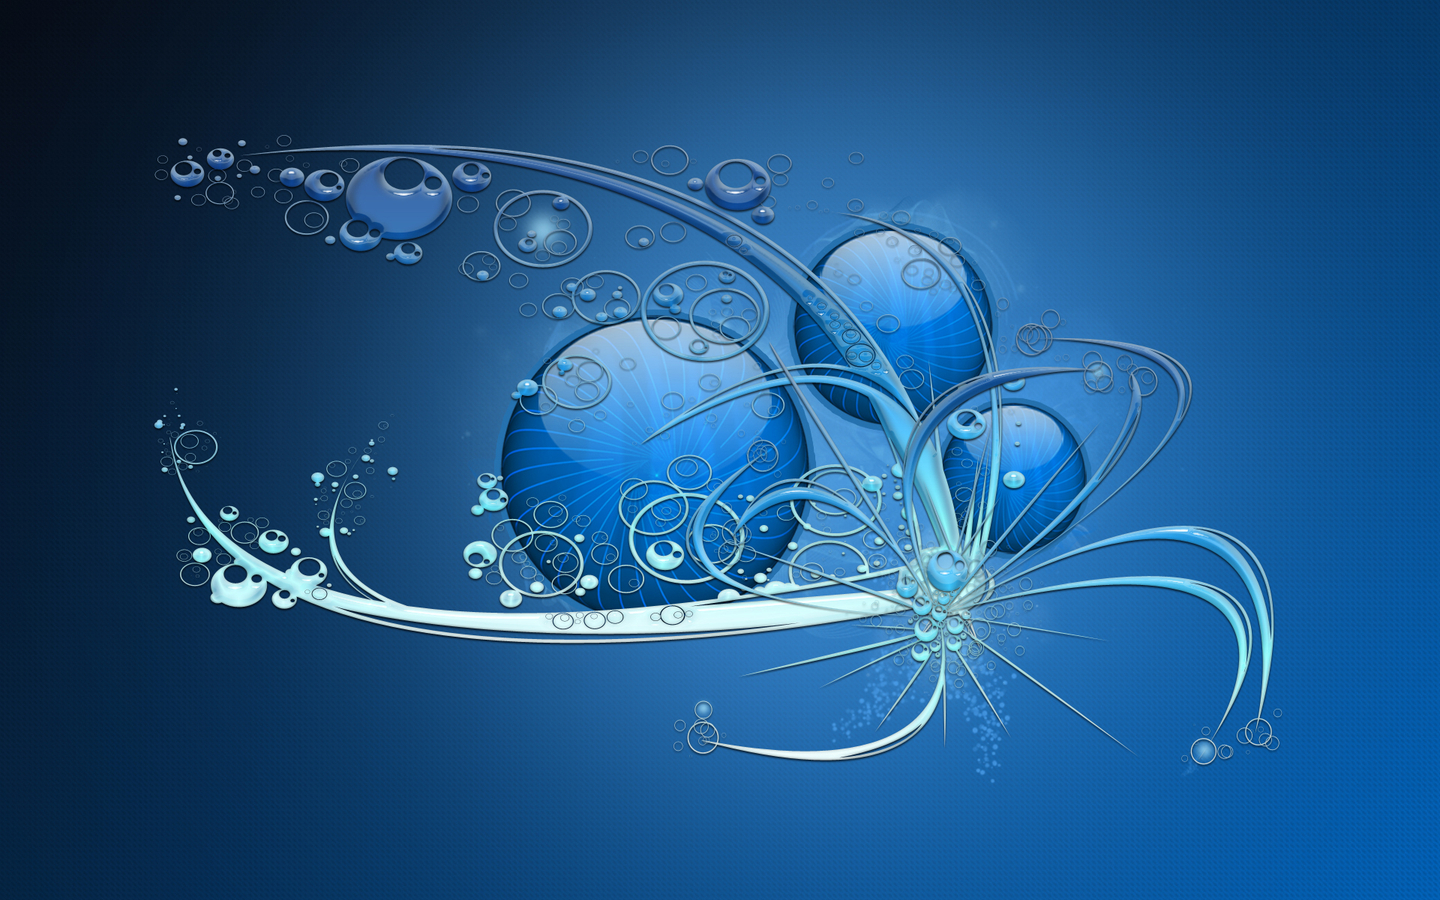 Free Download Blue Abstract Widescreen Hd Wallpaper Blue